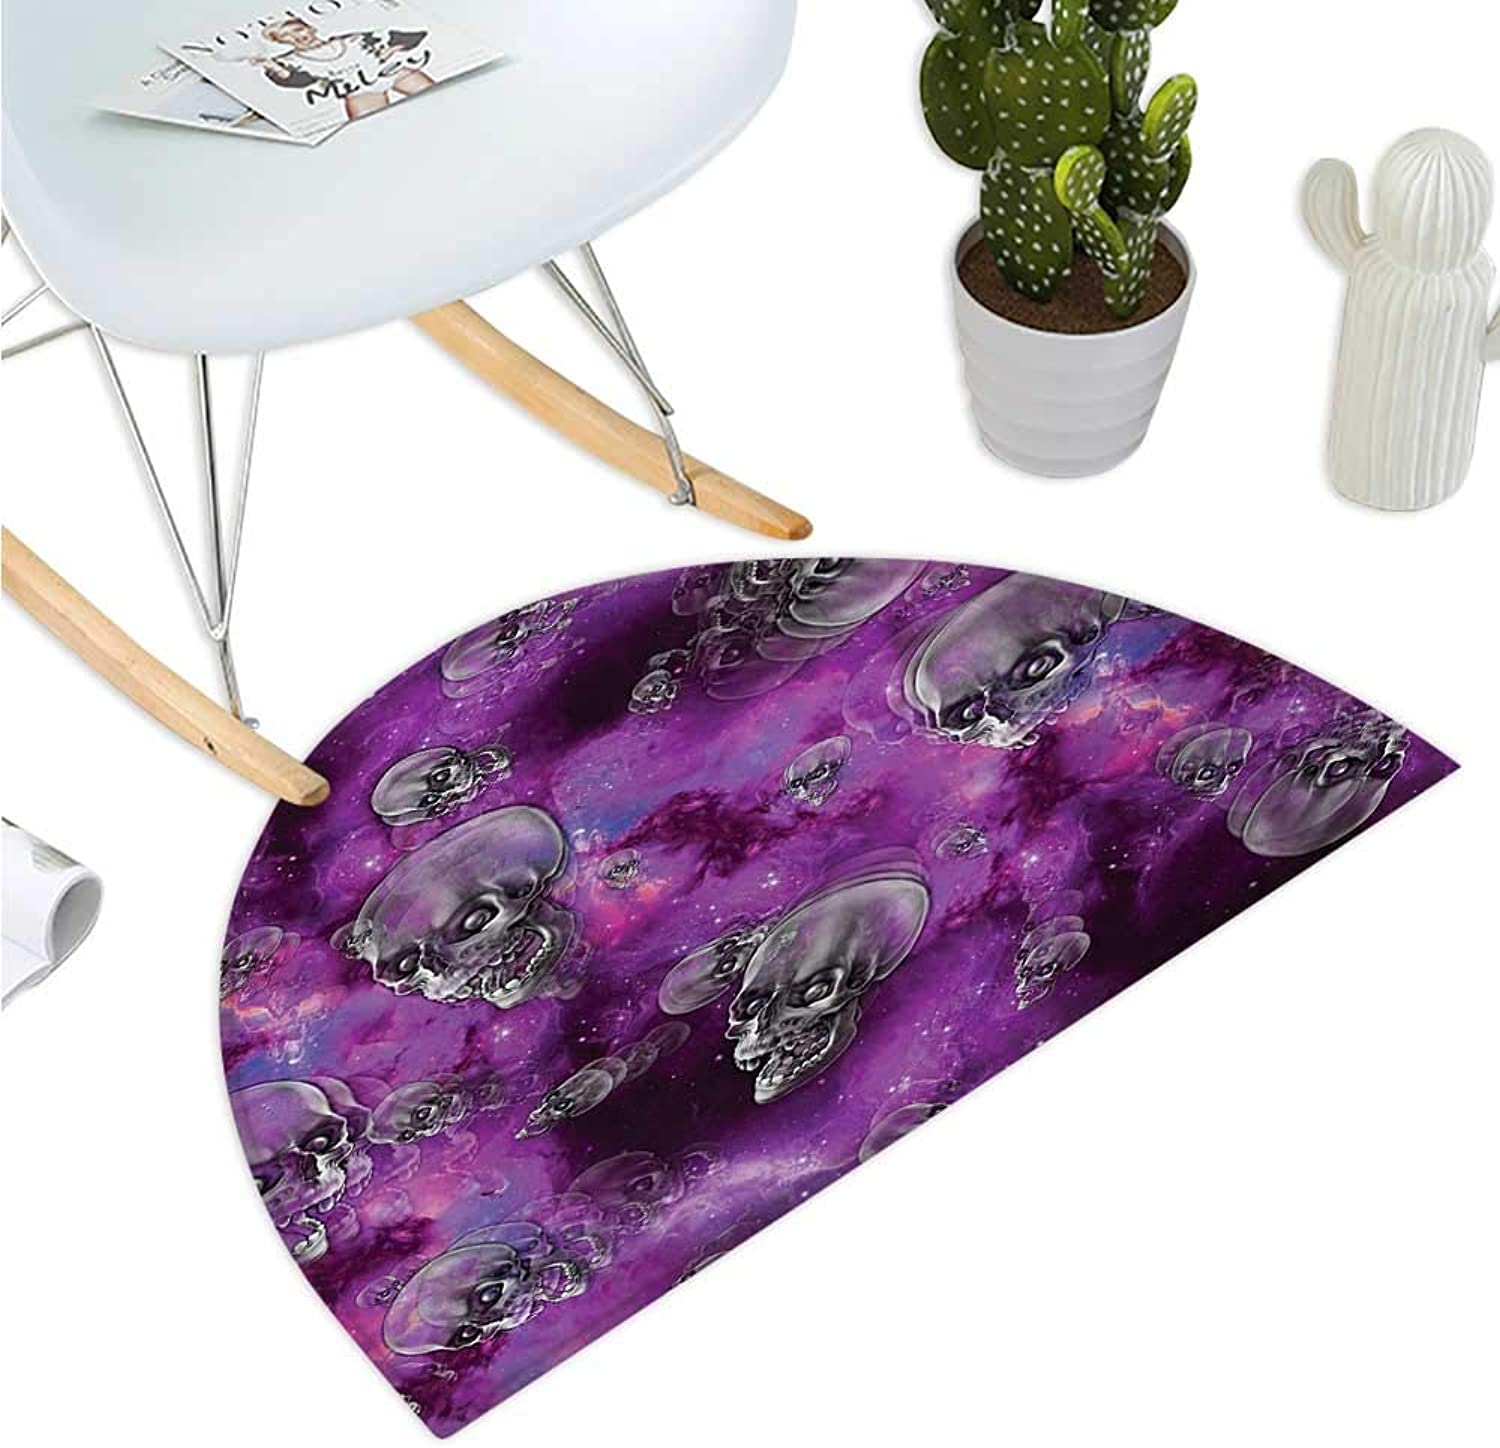 Skull Semicircular Cushion Horror Movie Thirller Themed Flying Skull Heads Halloween in Outer Space Image Bathroom Mat H 35.4  xD 53.1  Black and Purple